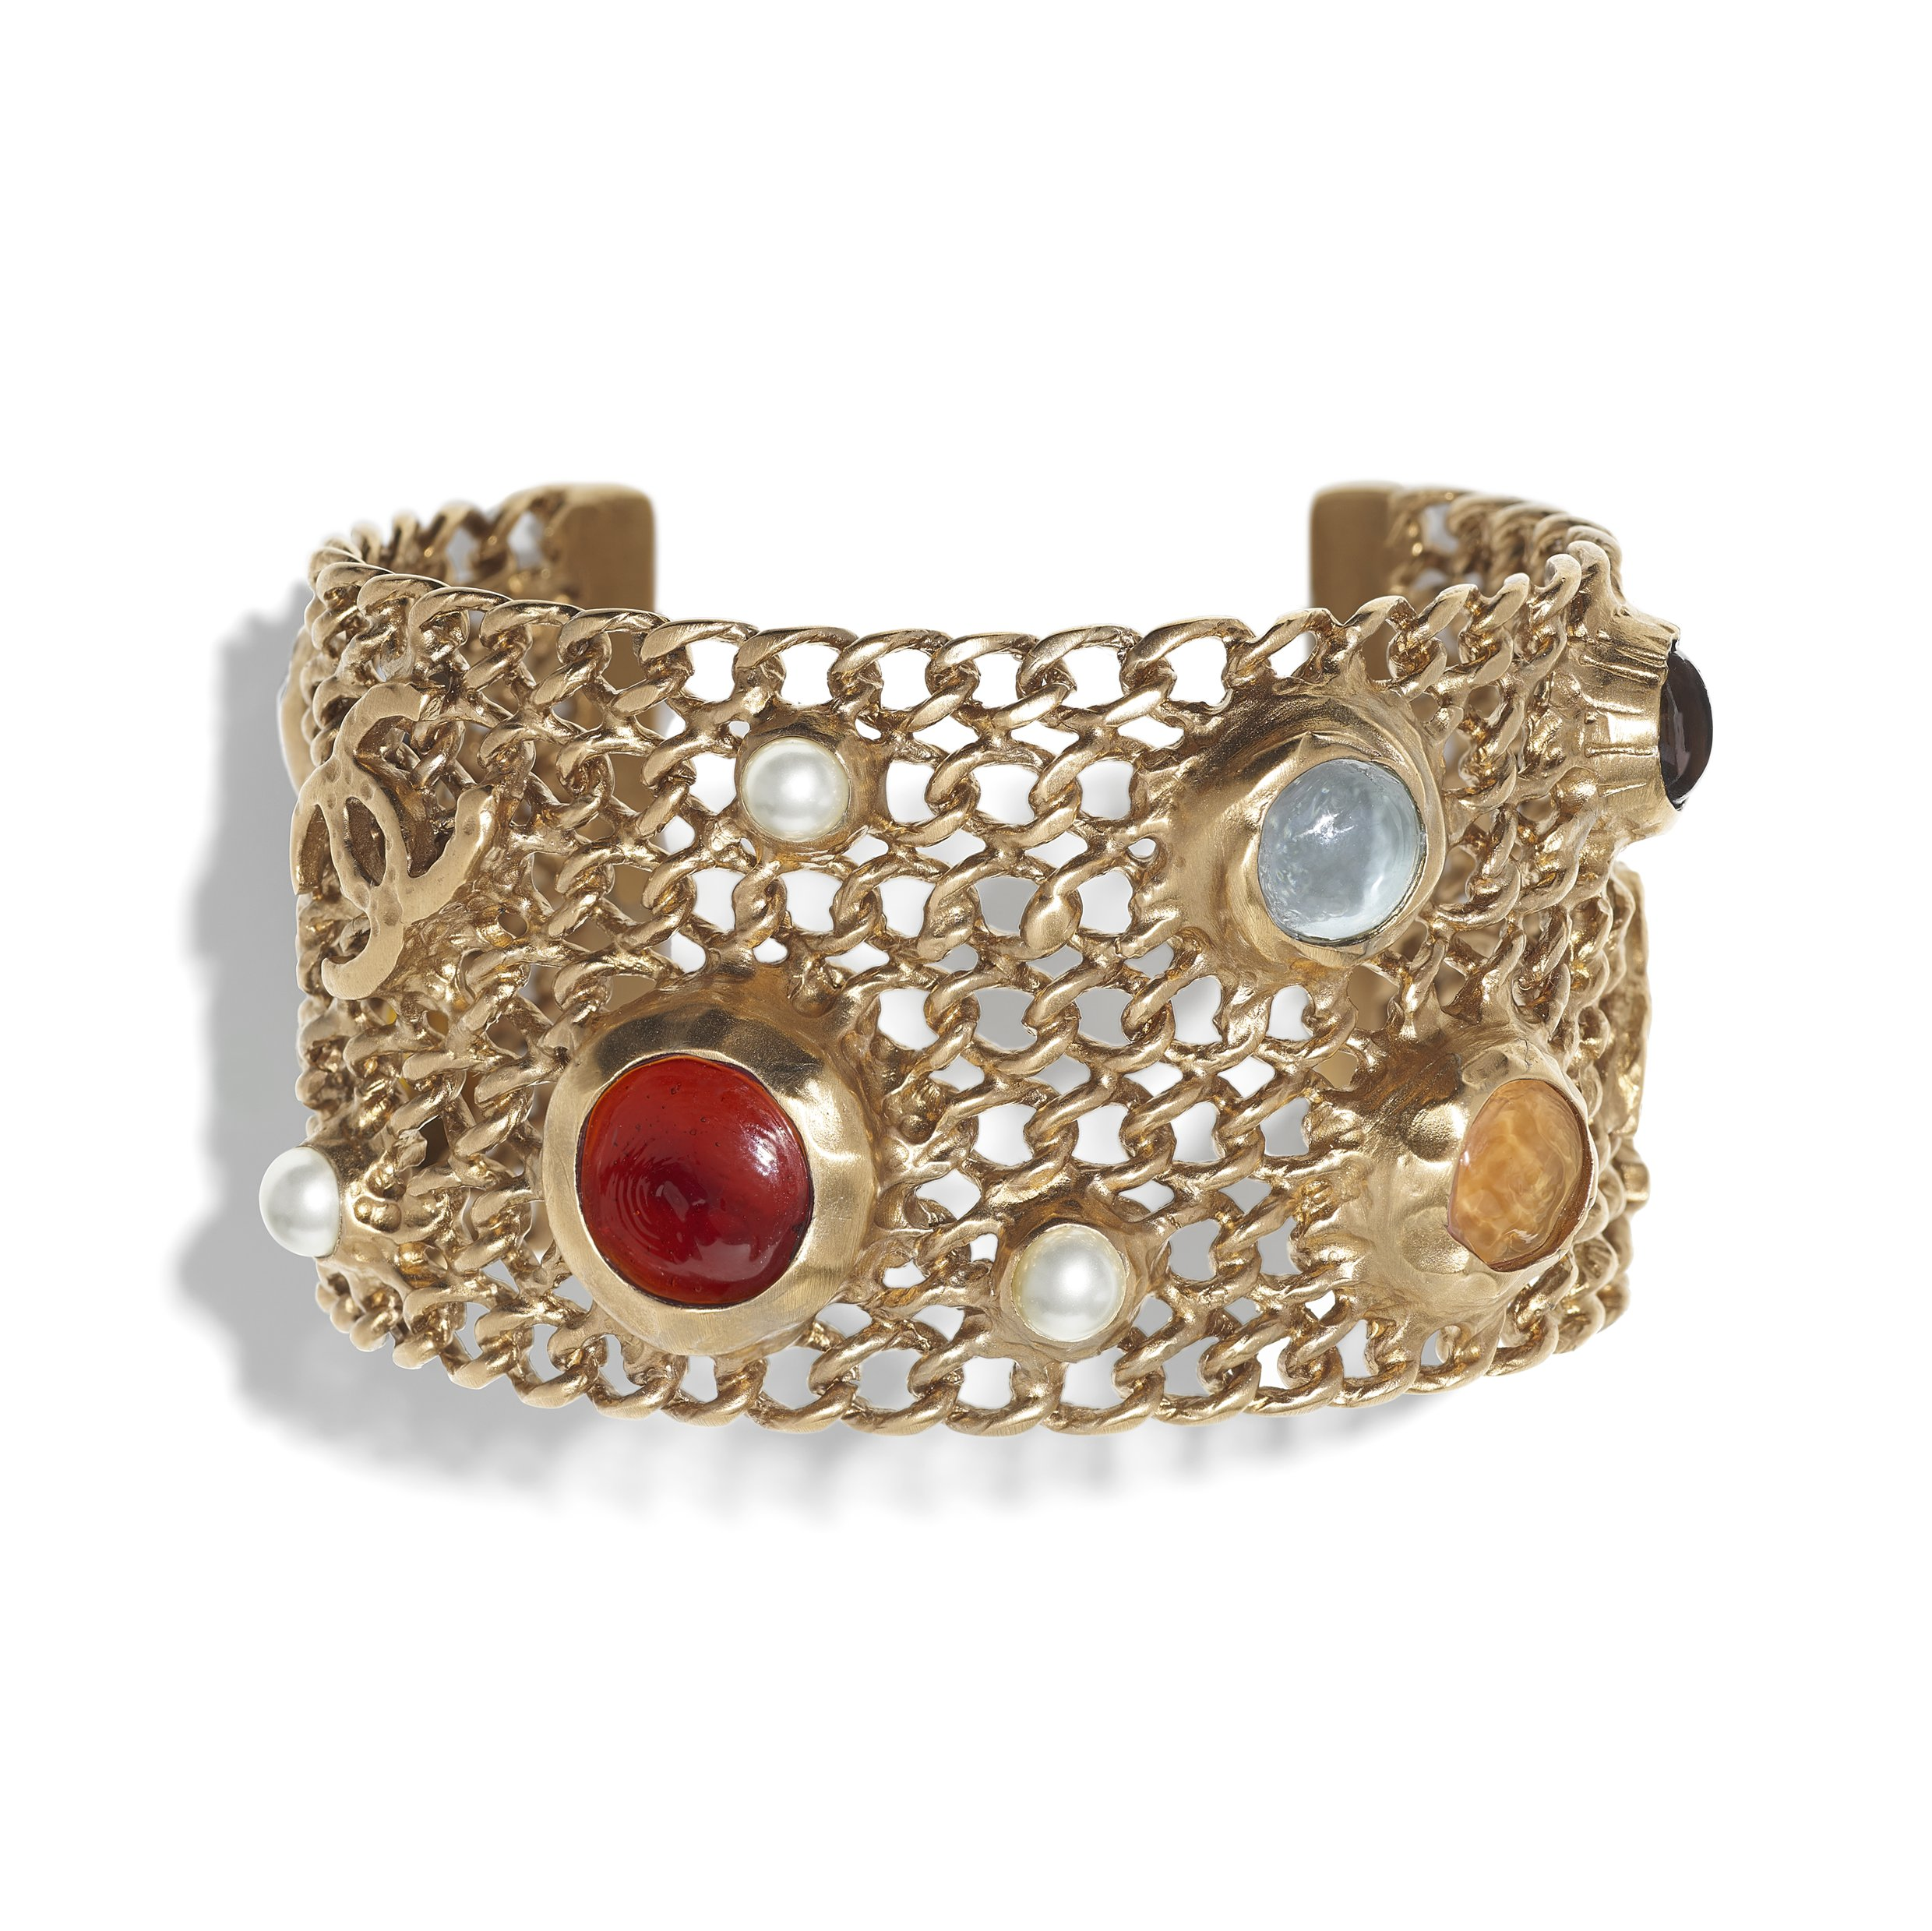 AB0269-Y47391-Z8821 - Cuff in gold metal with glass beads